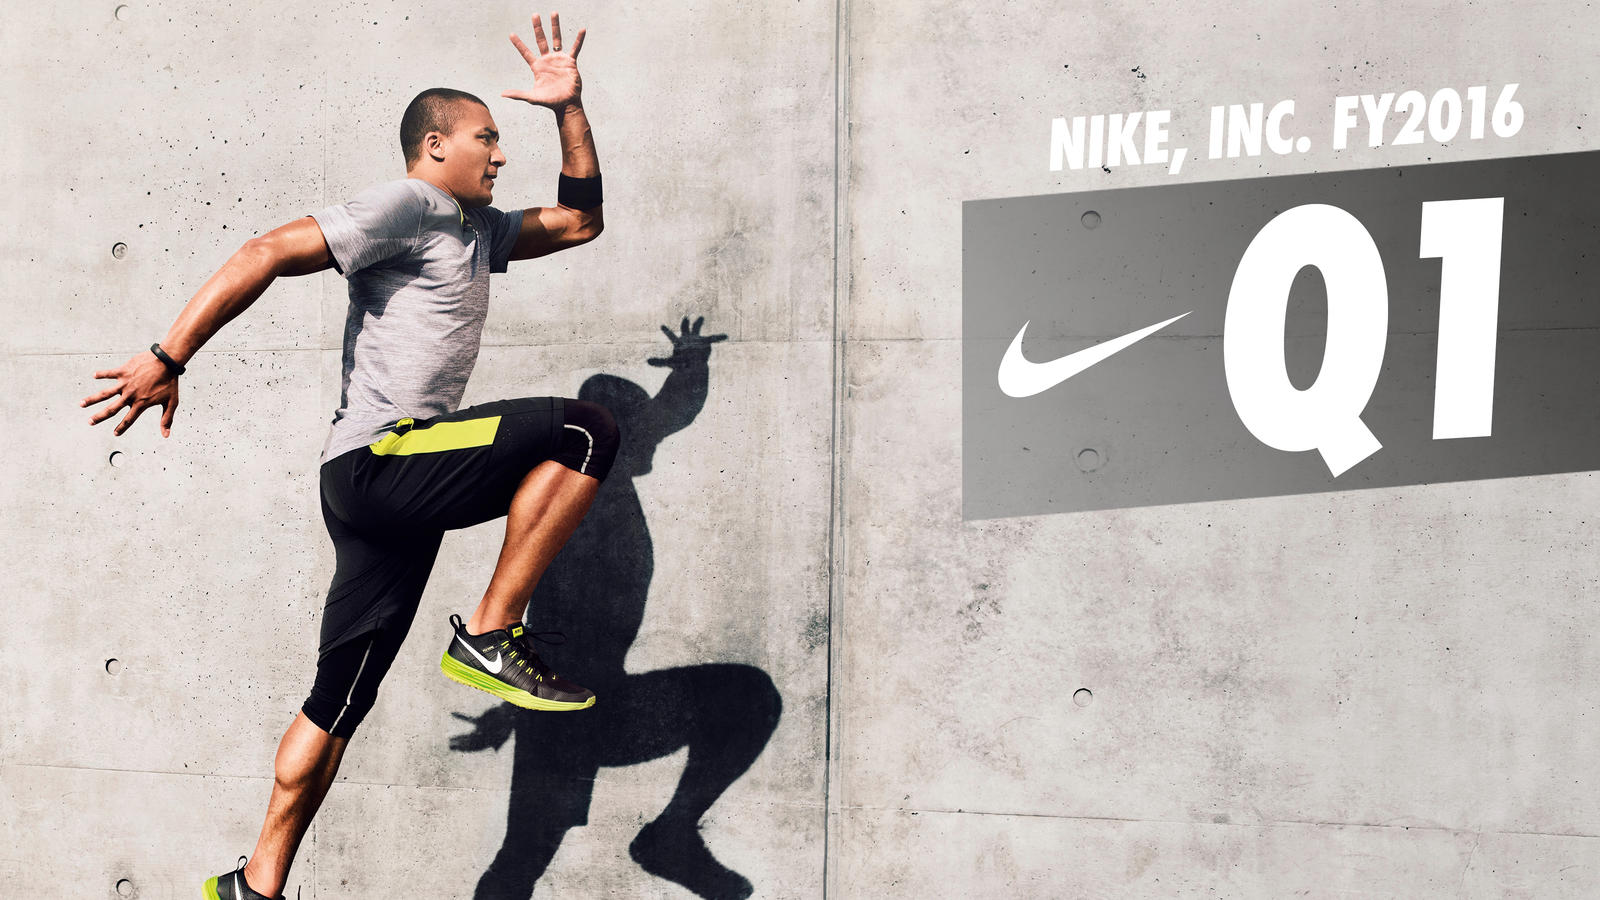 Nike-earnings-2016-q1-16x9_hd_1600